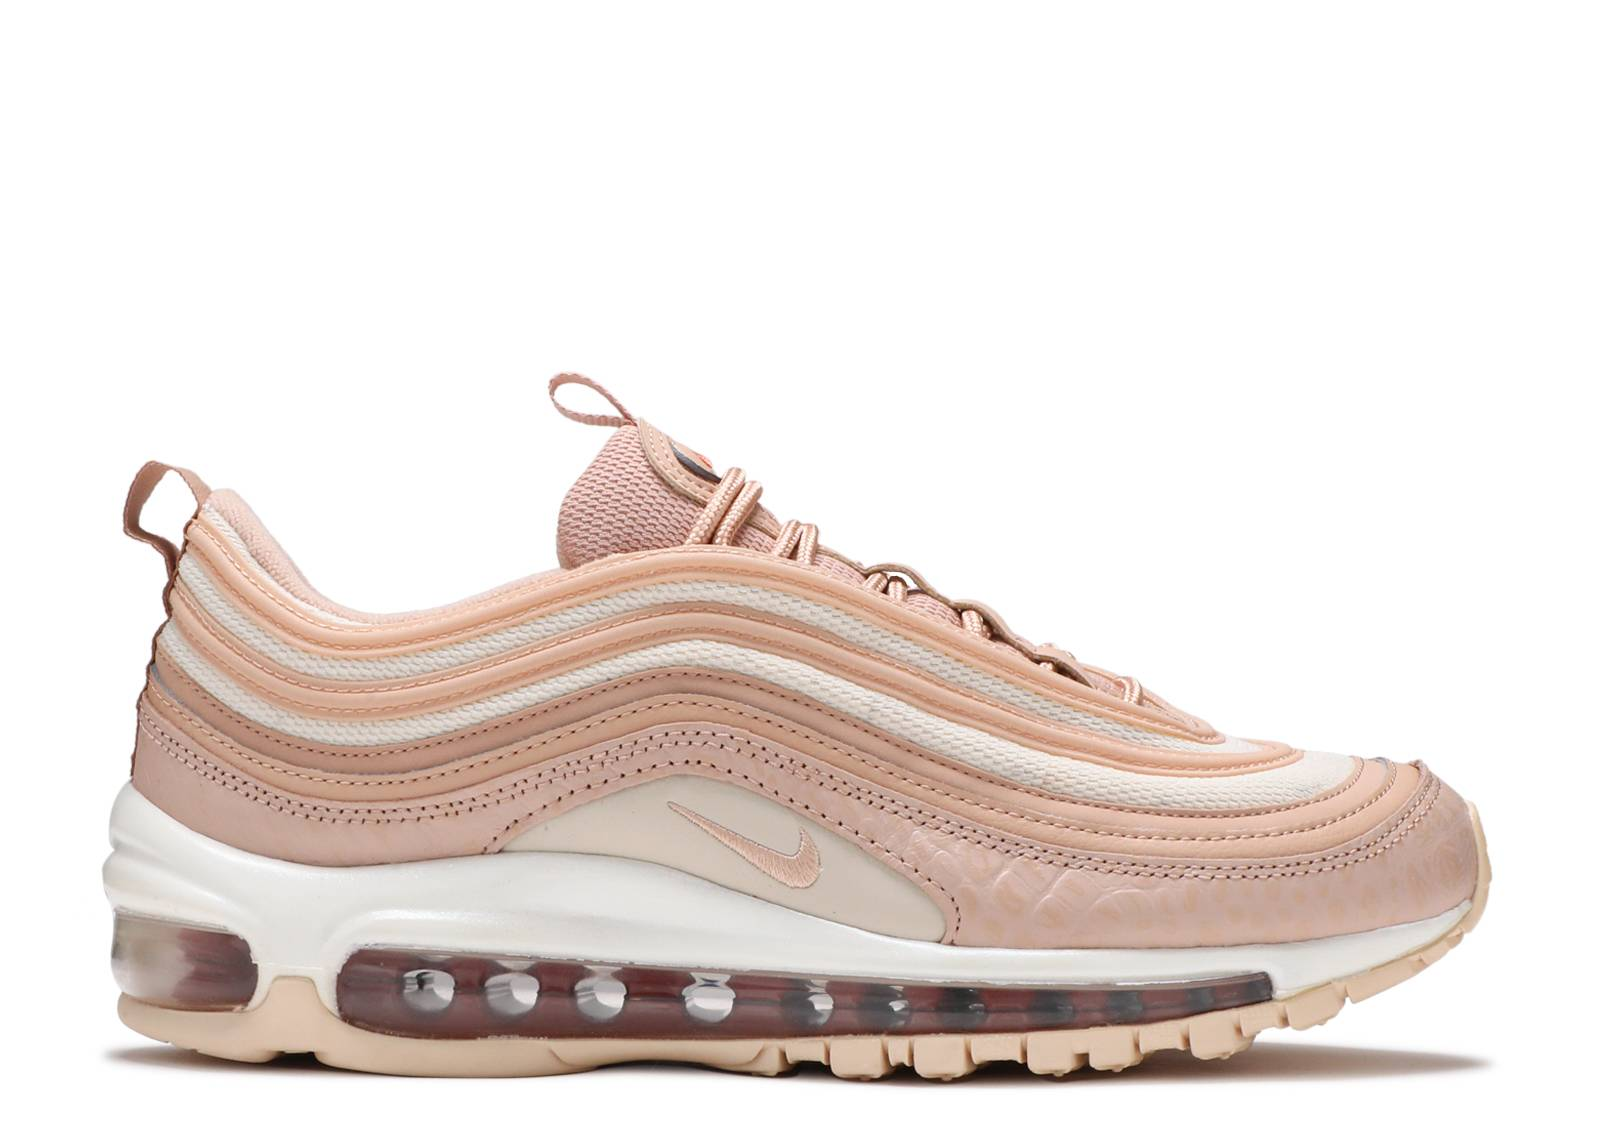 ingeniero músico Complicado  Wmns Air Max 97 'Bio Beige' - Nike - AR7621 201 - bio beige/light  carbon-dusty peach-bio beige | Flight Club